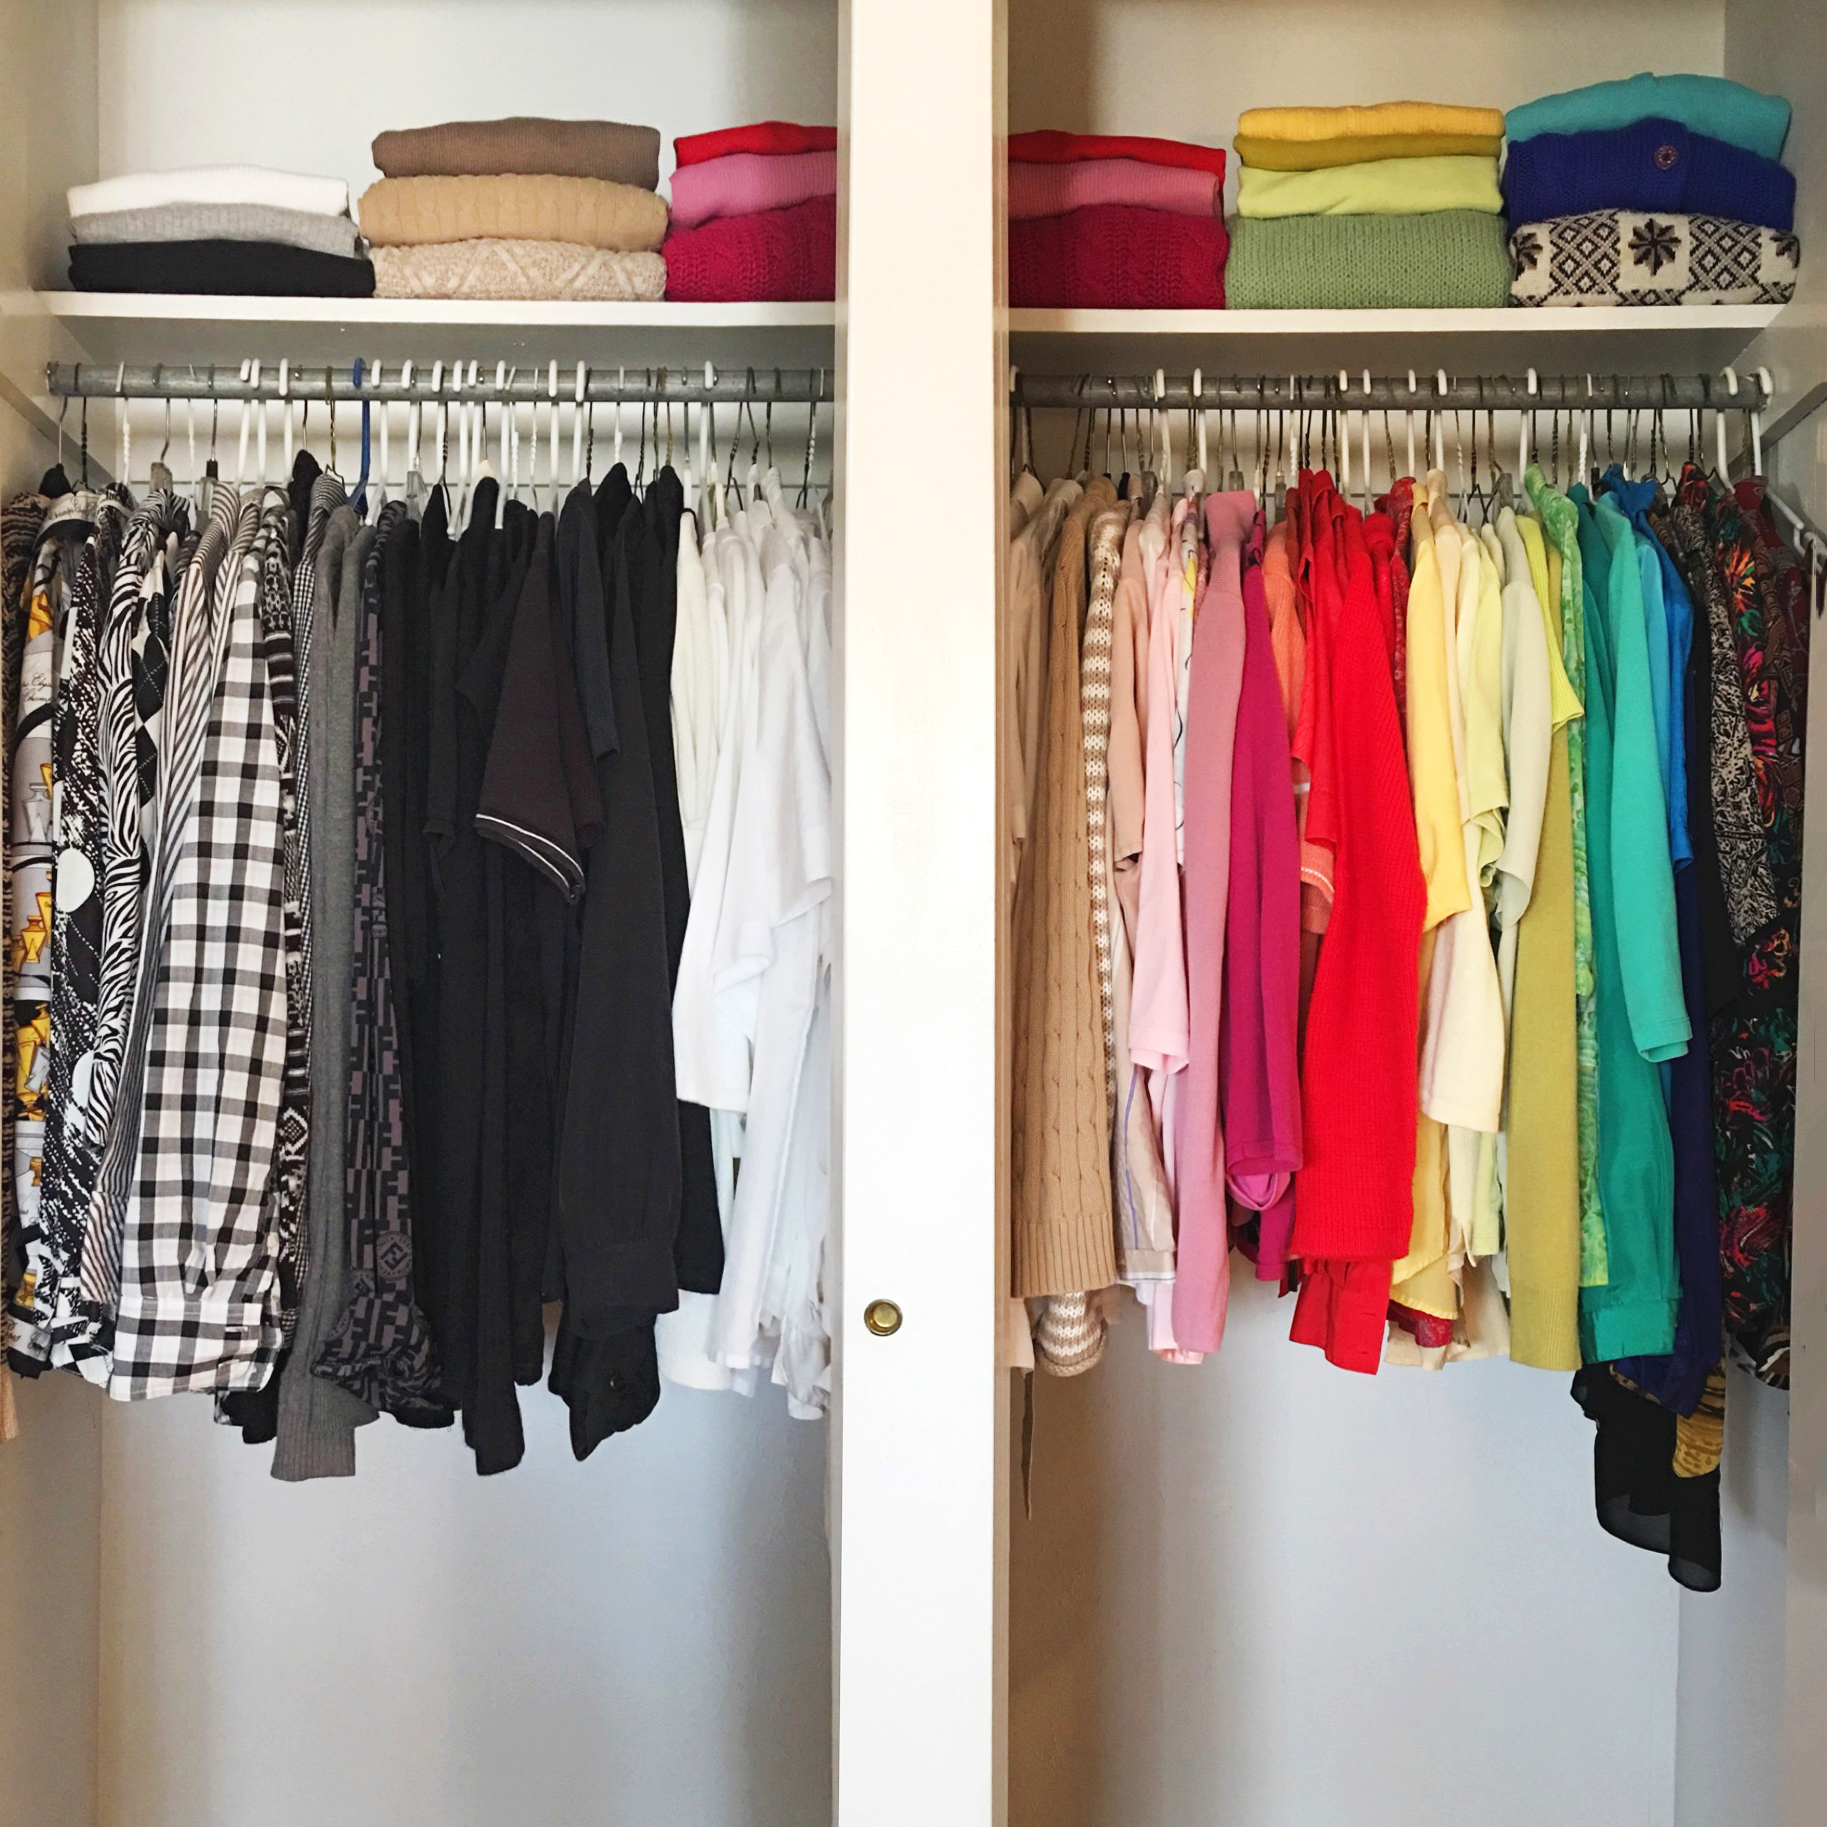 Closet with tops organized in a color rainbow